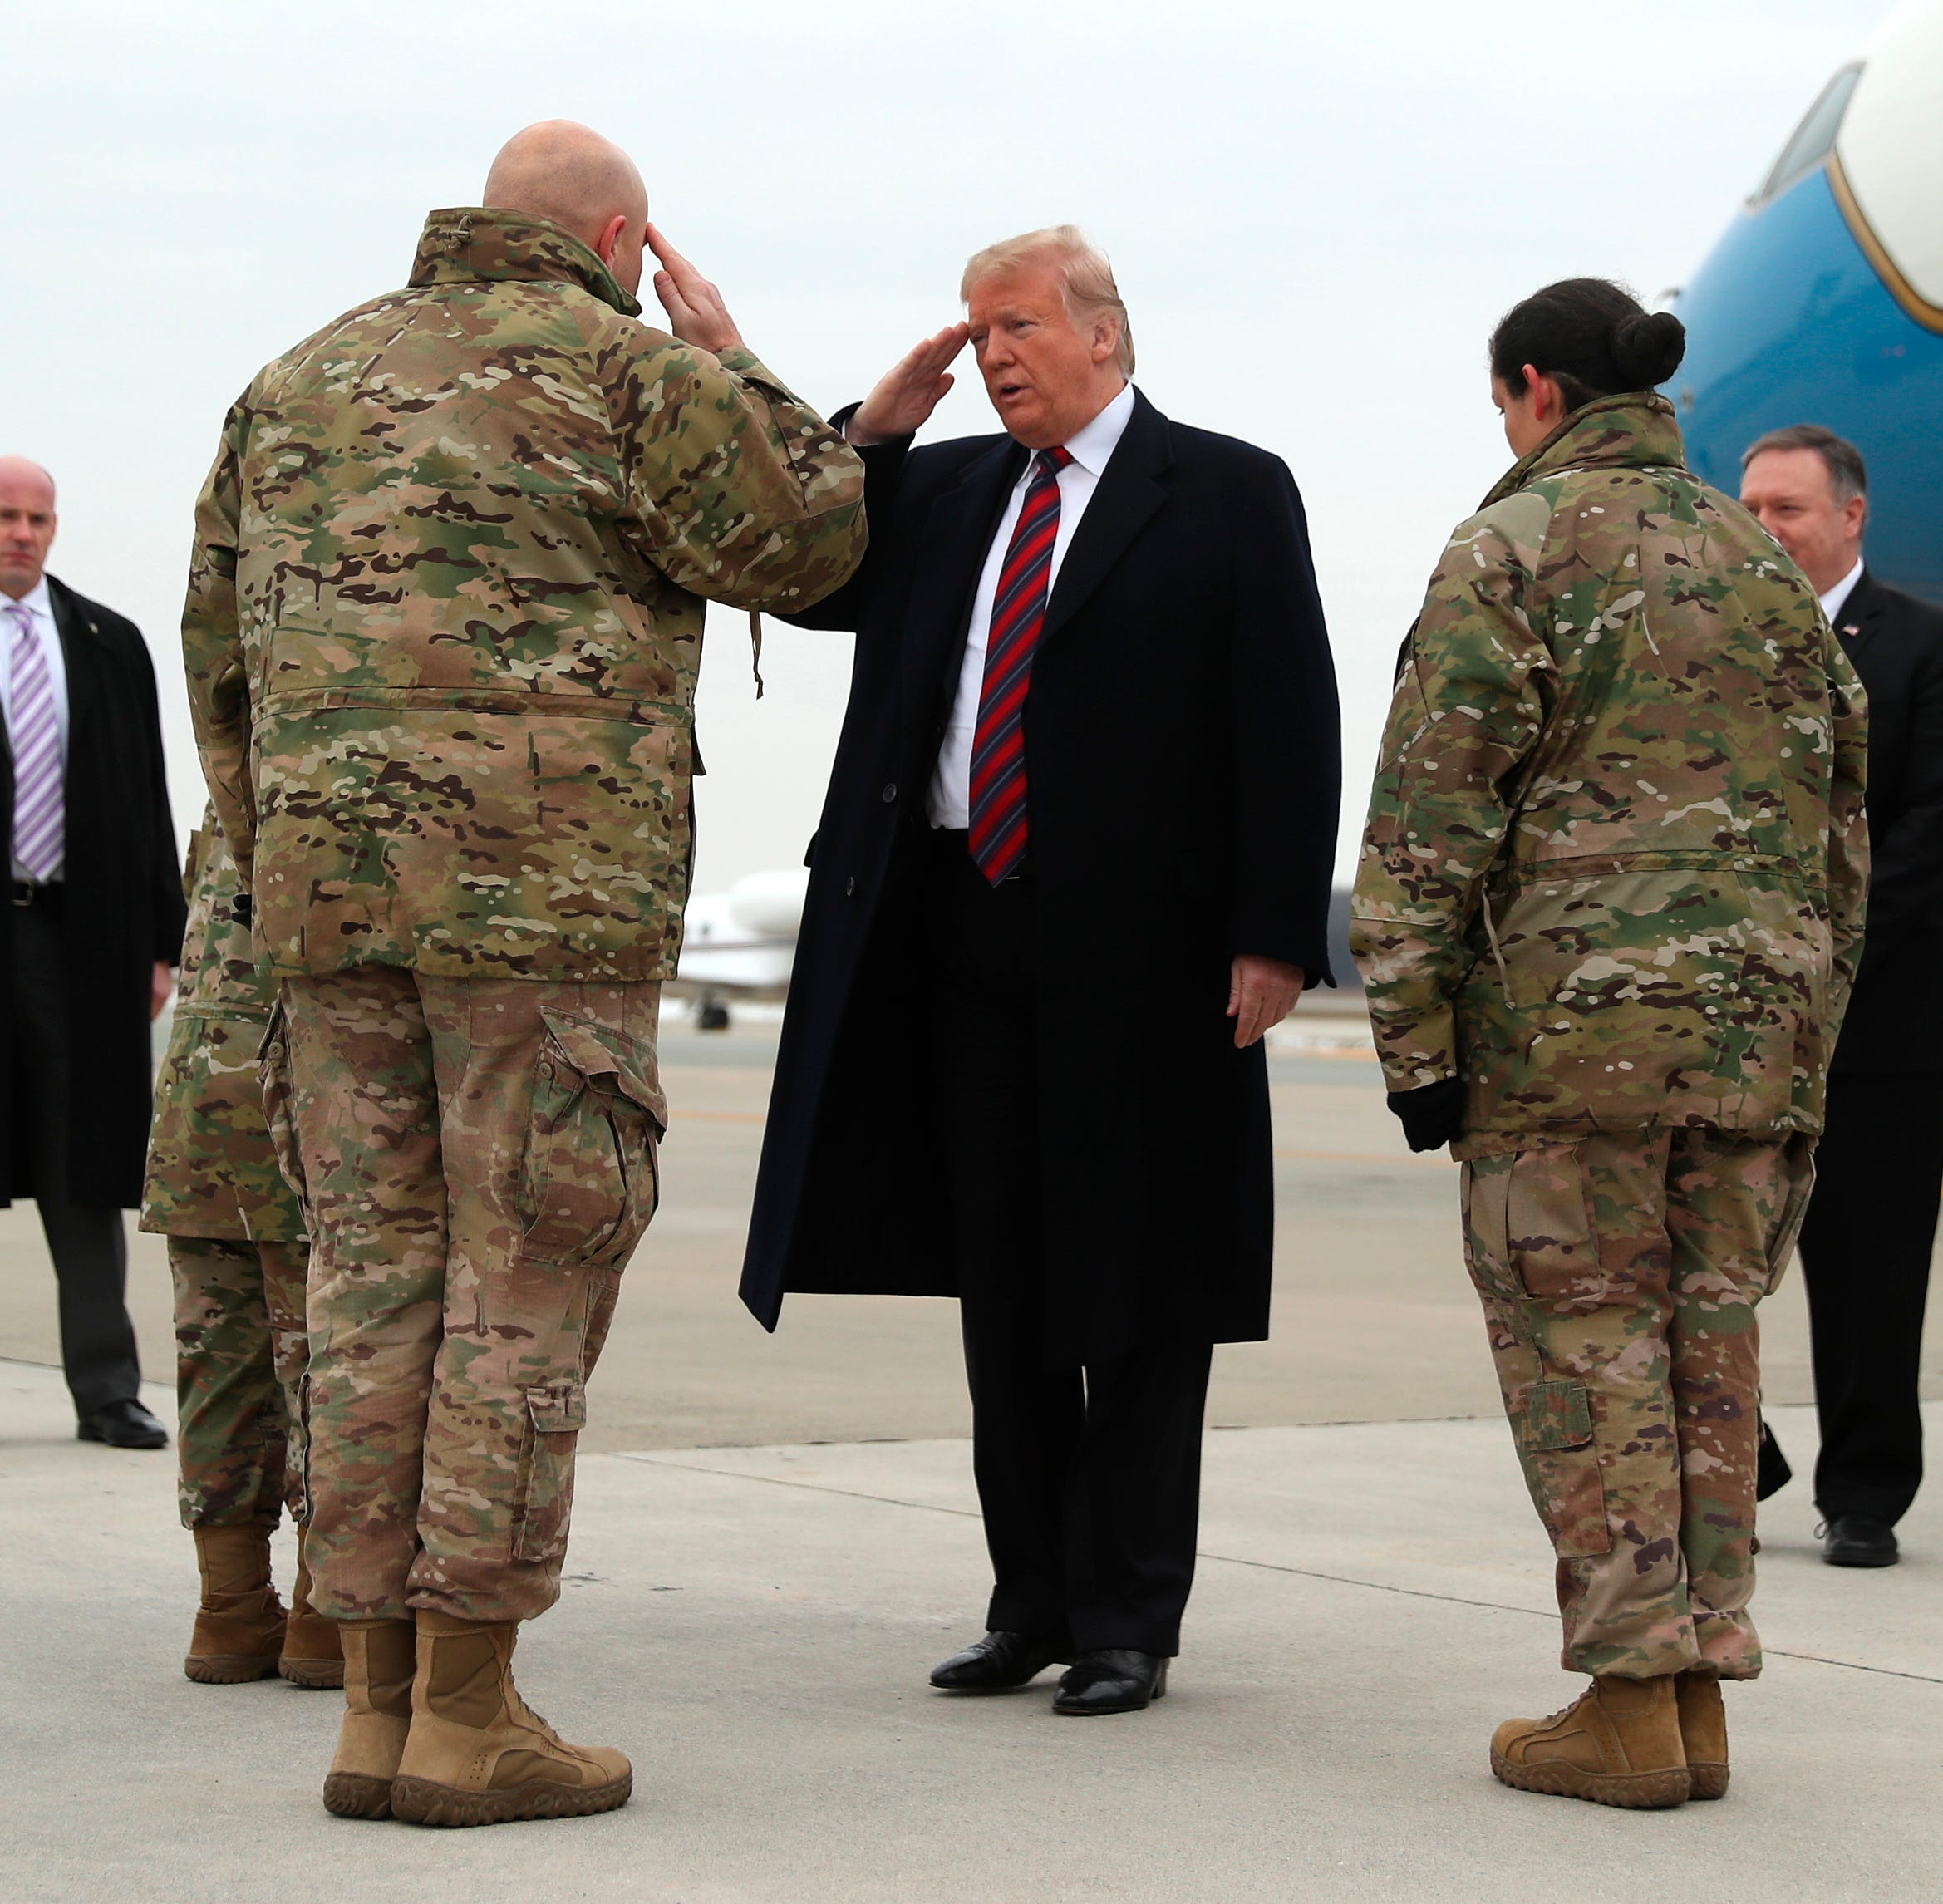 Trump visits Dover Air Force Base to meet families of Americans killed in Syria